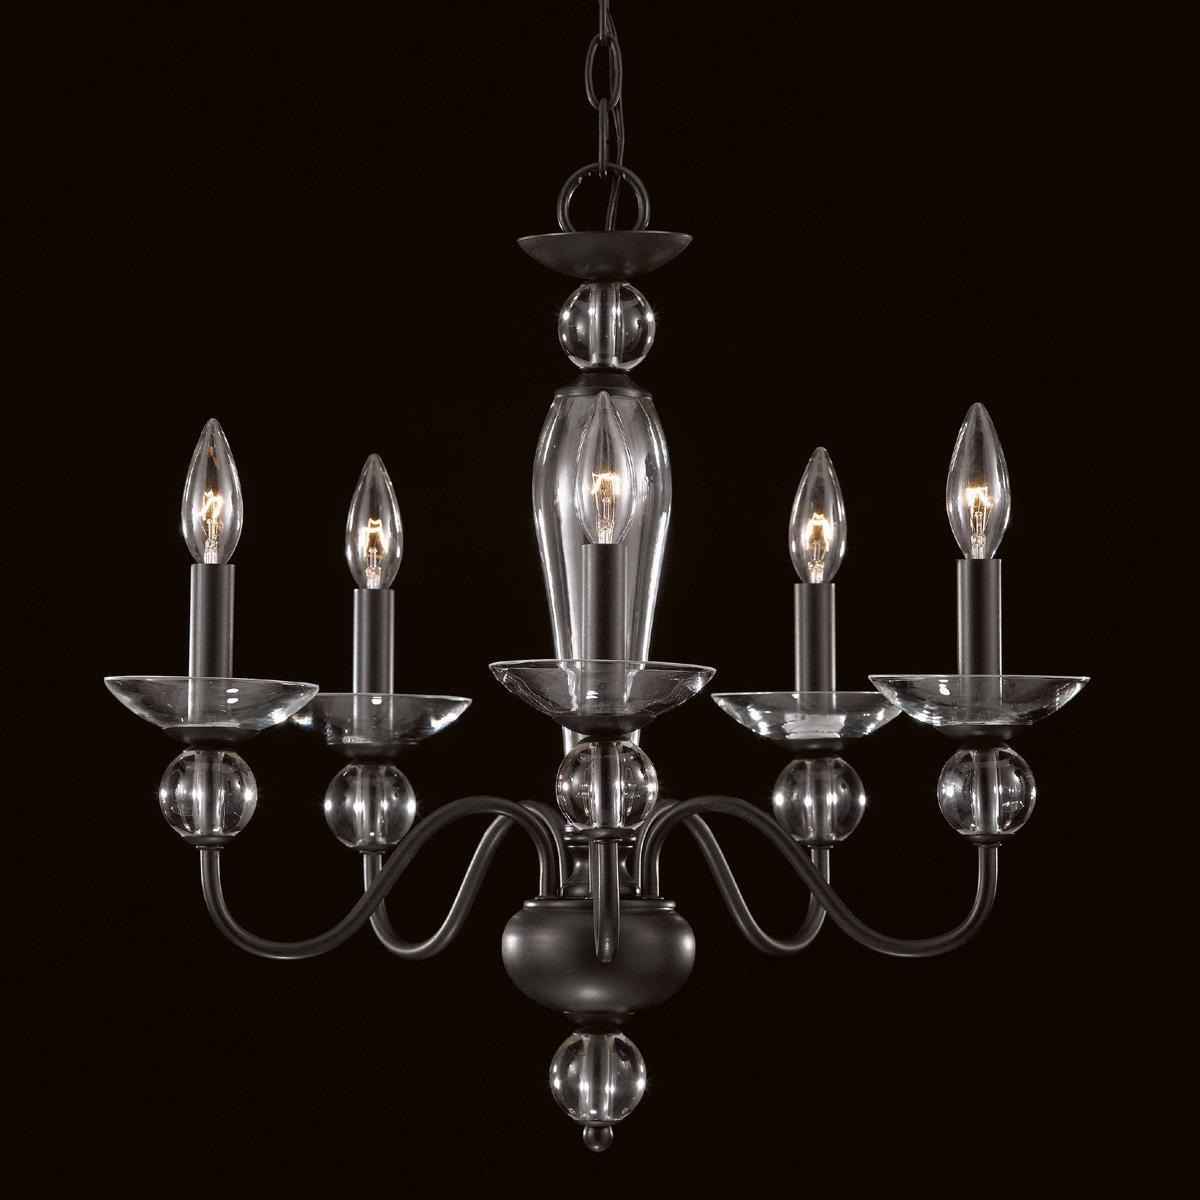 New Classic 5-light Mini Chandelier - Thumbnail 0